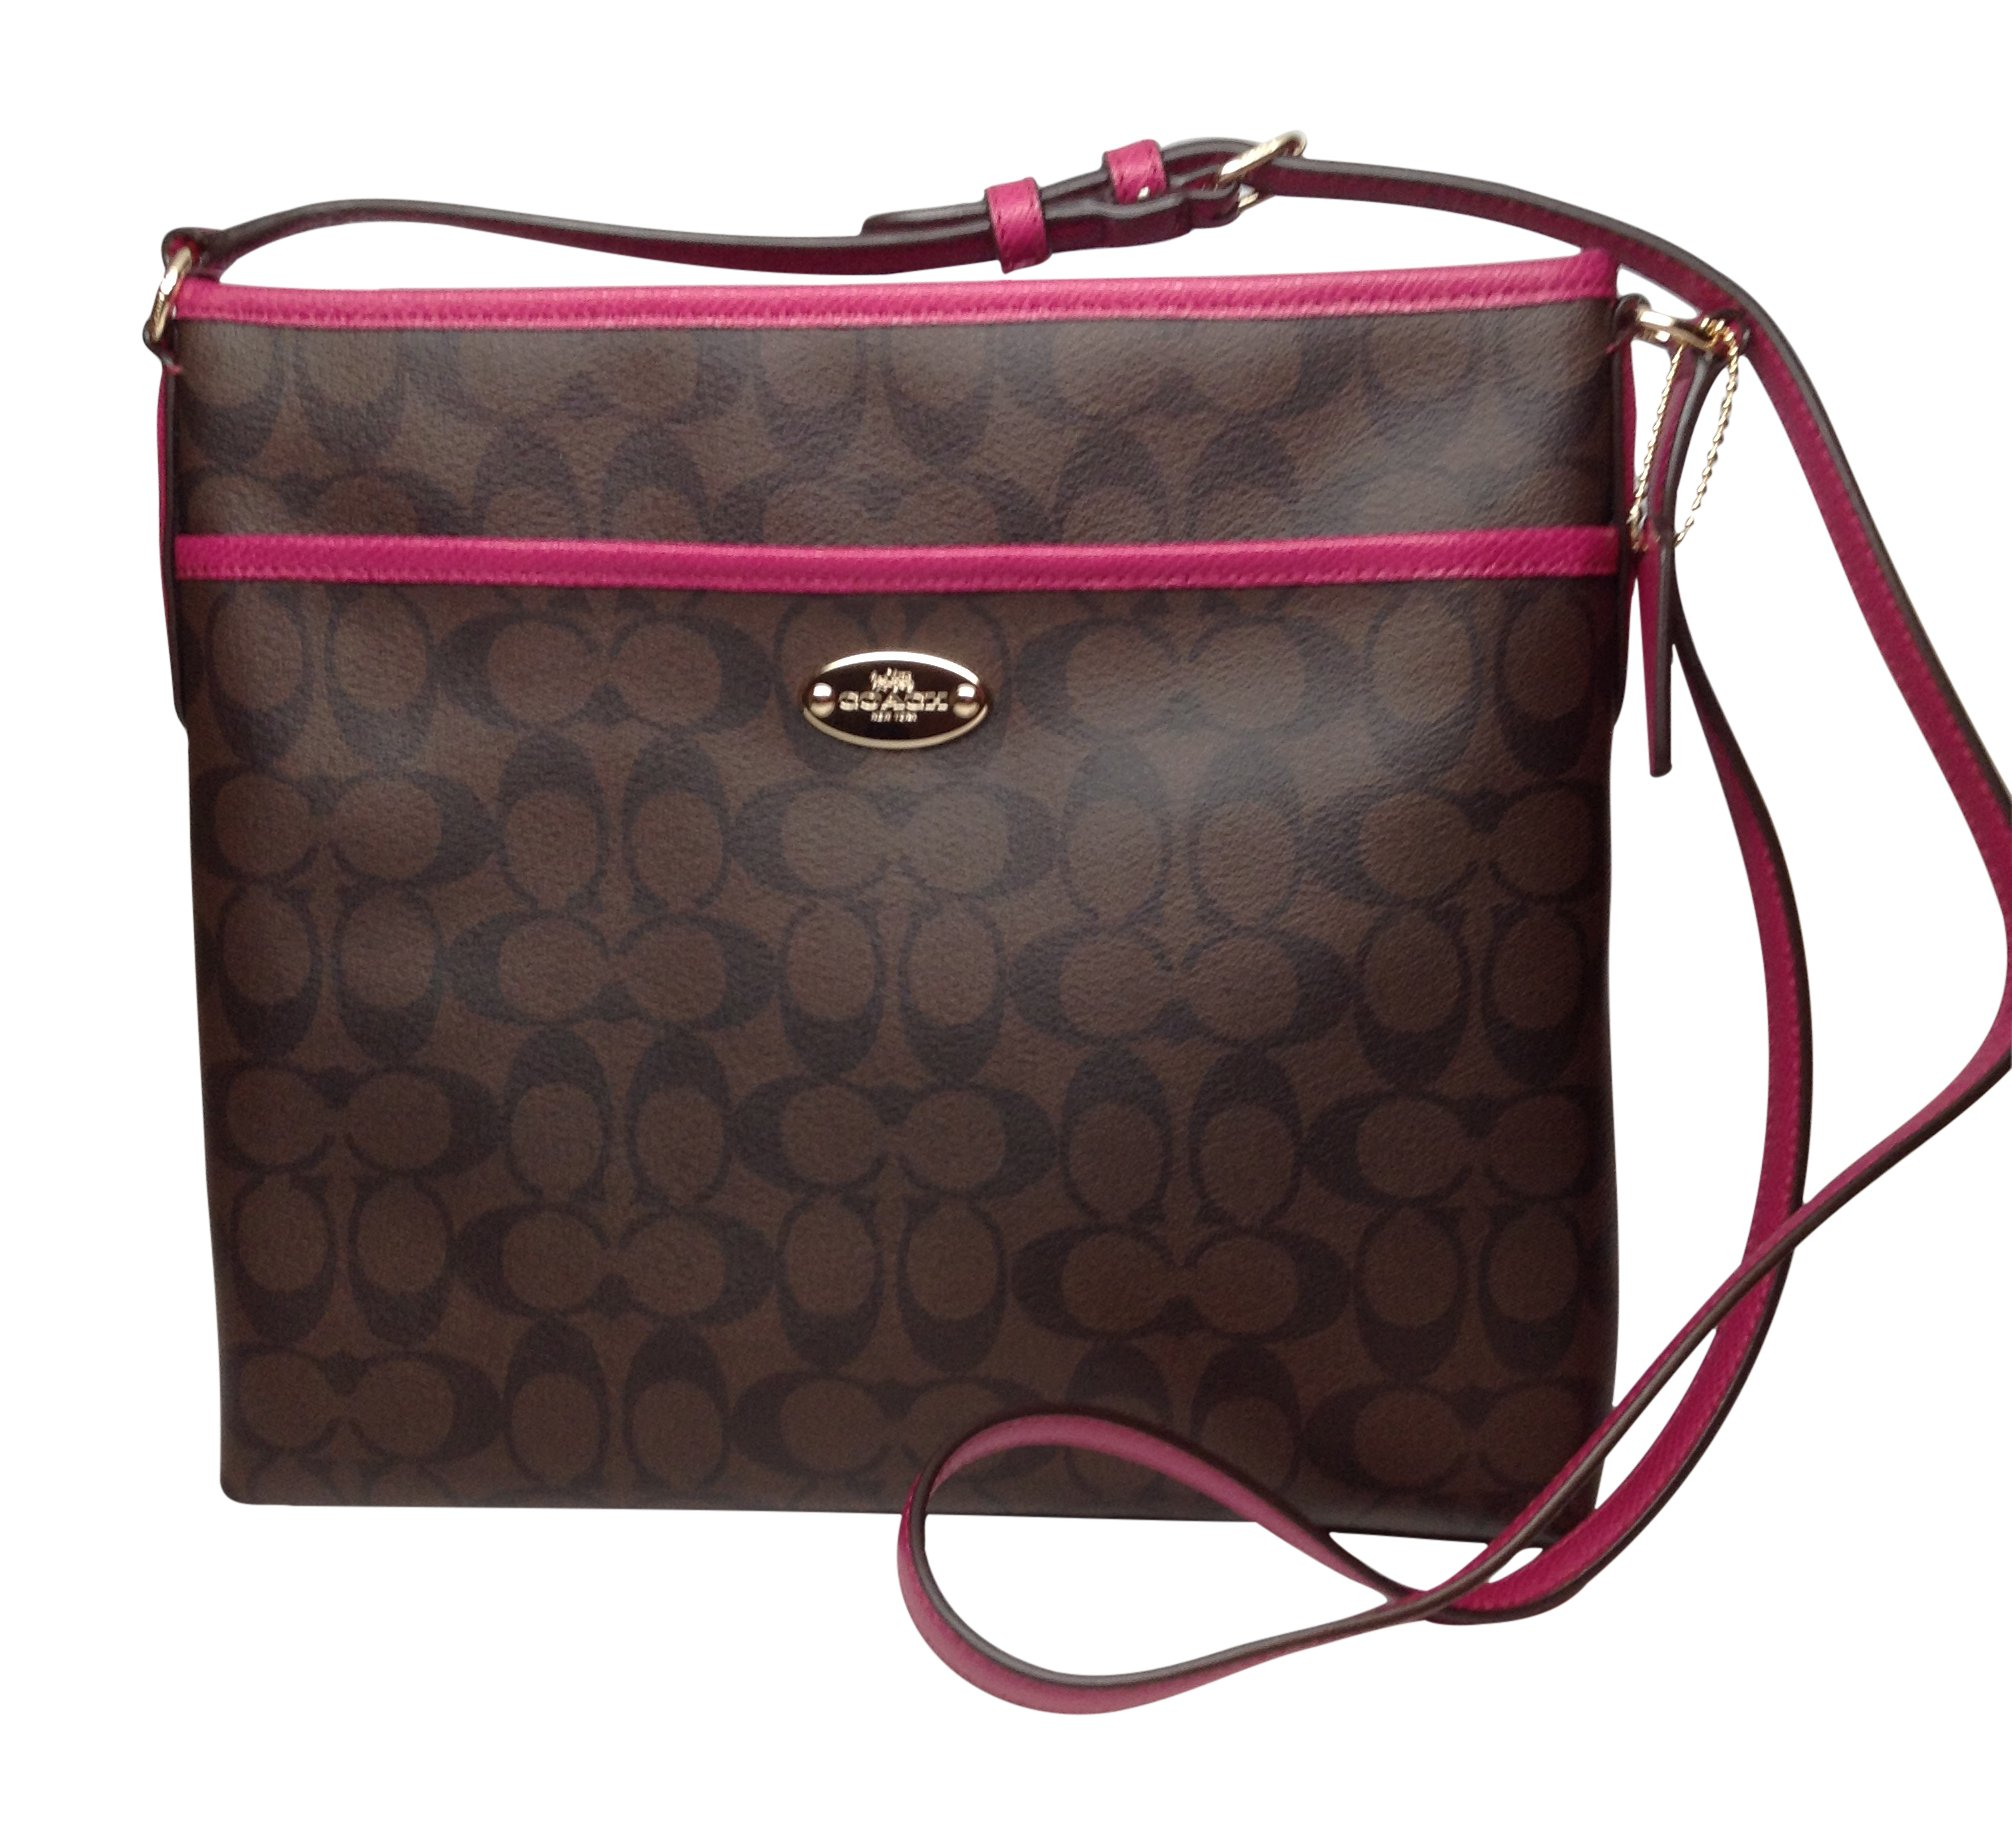 Coach Signature File Bag - Brown/Fuchsia